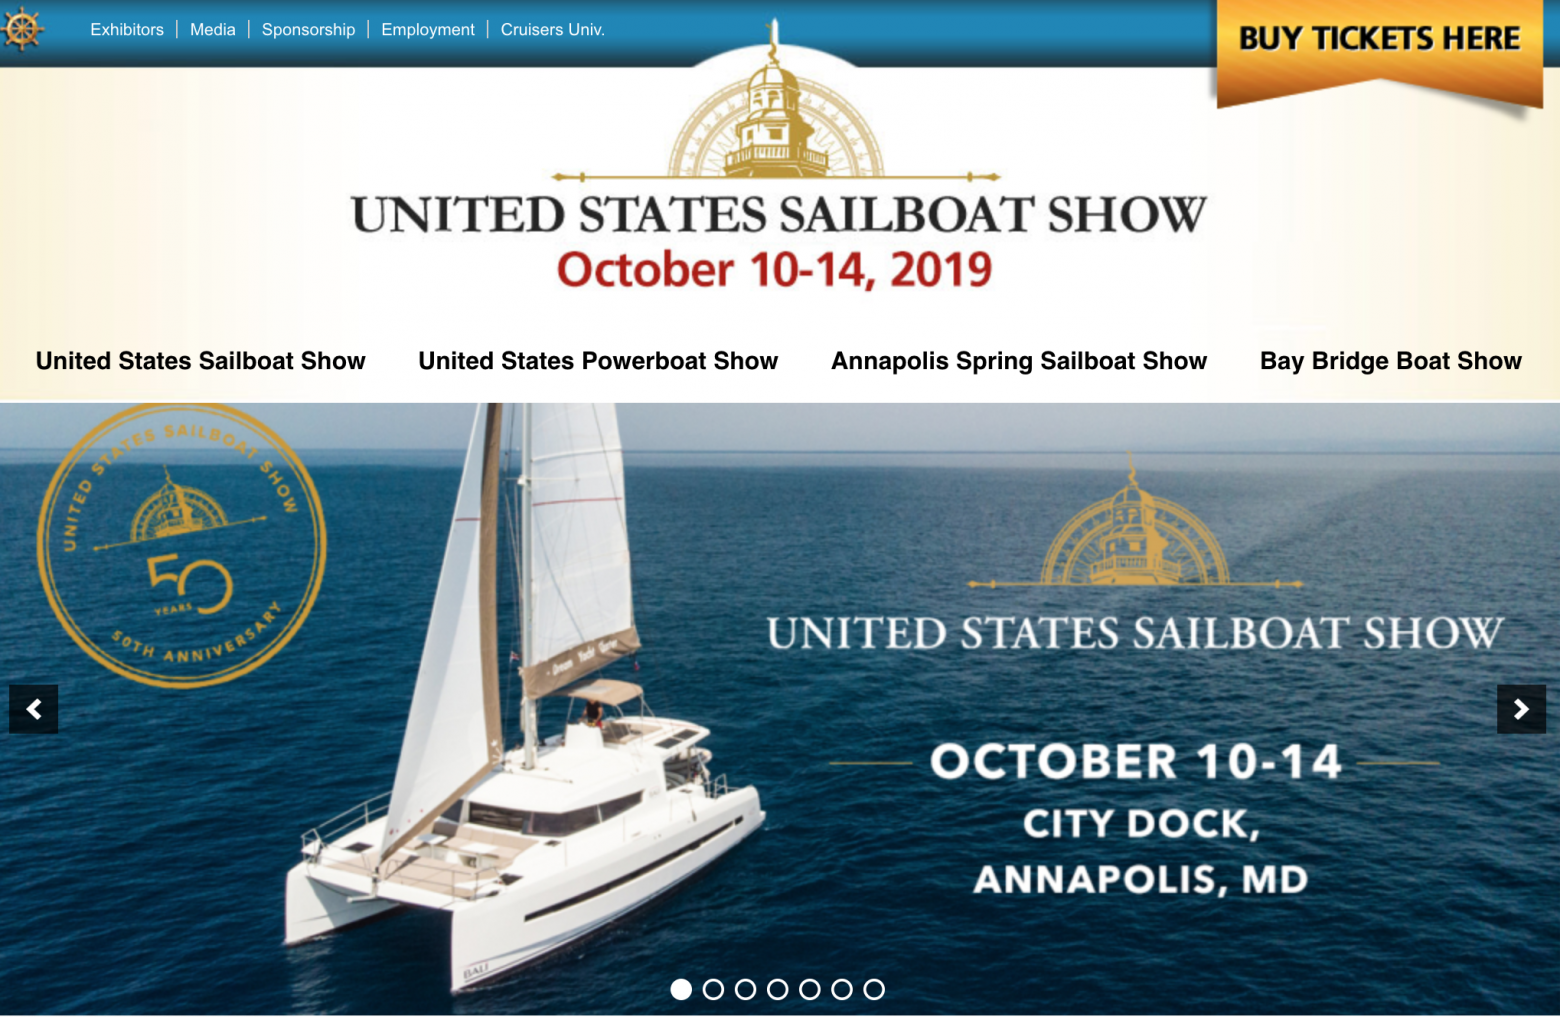 Annapolis Boat Show Spring 2020.2019 United States Sailboat Show Preview Part 1 Catamarans